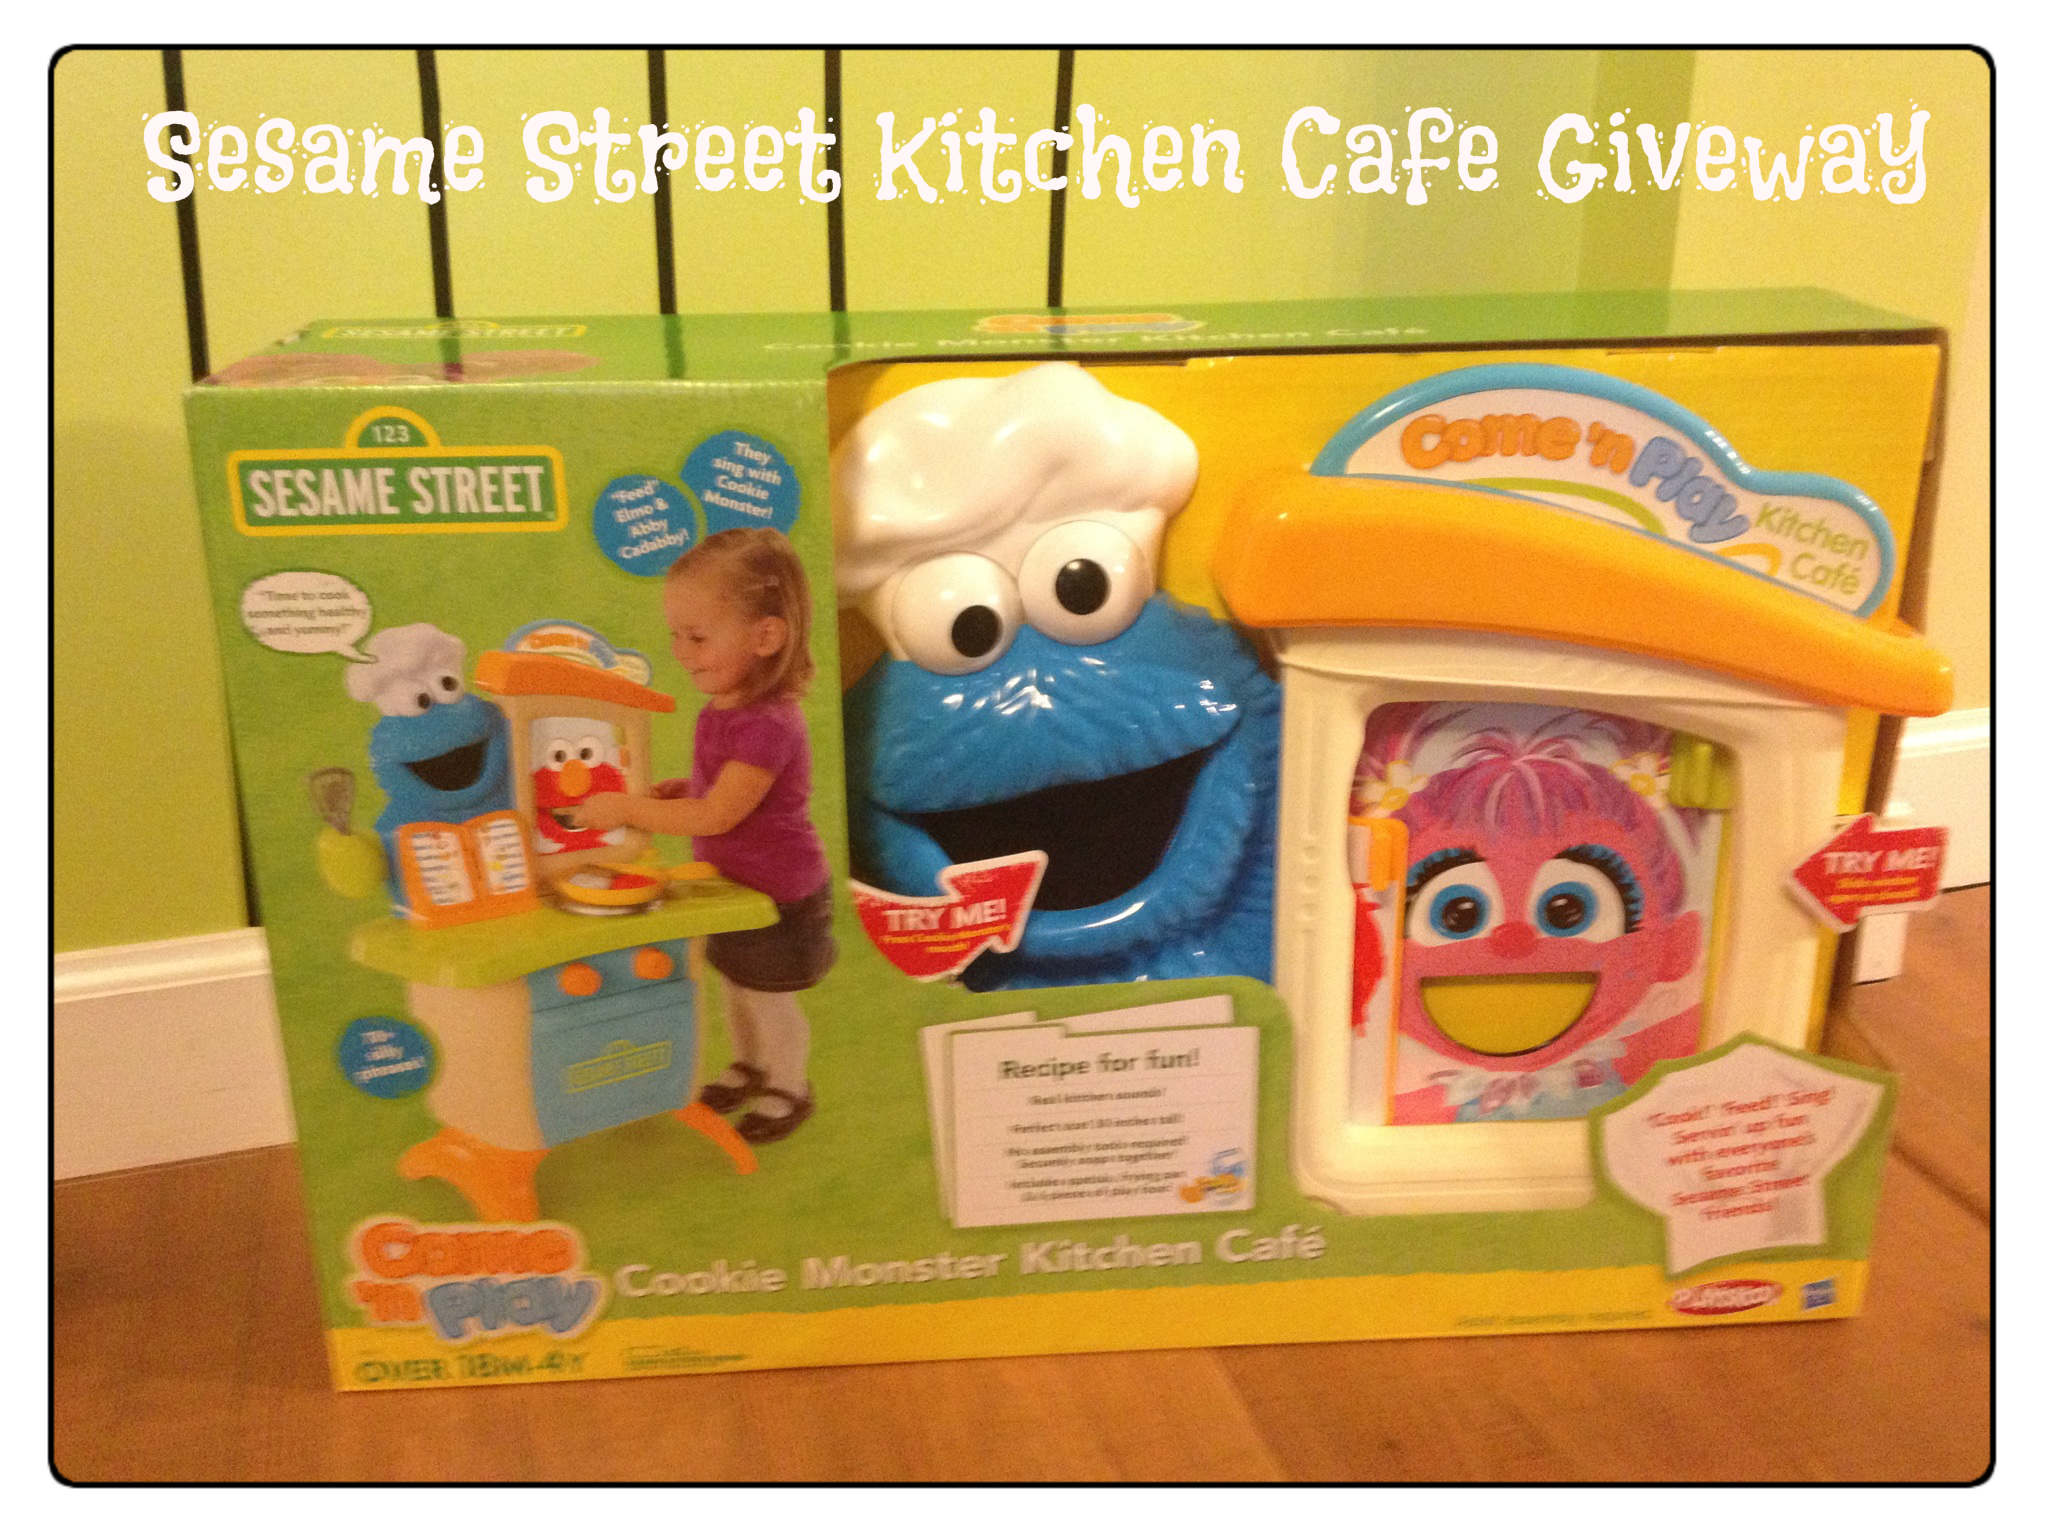 Sesame Street Cookie Monster Kitchen Cafe Giveaway